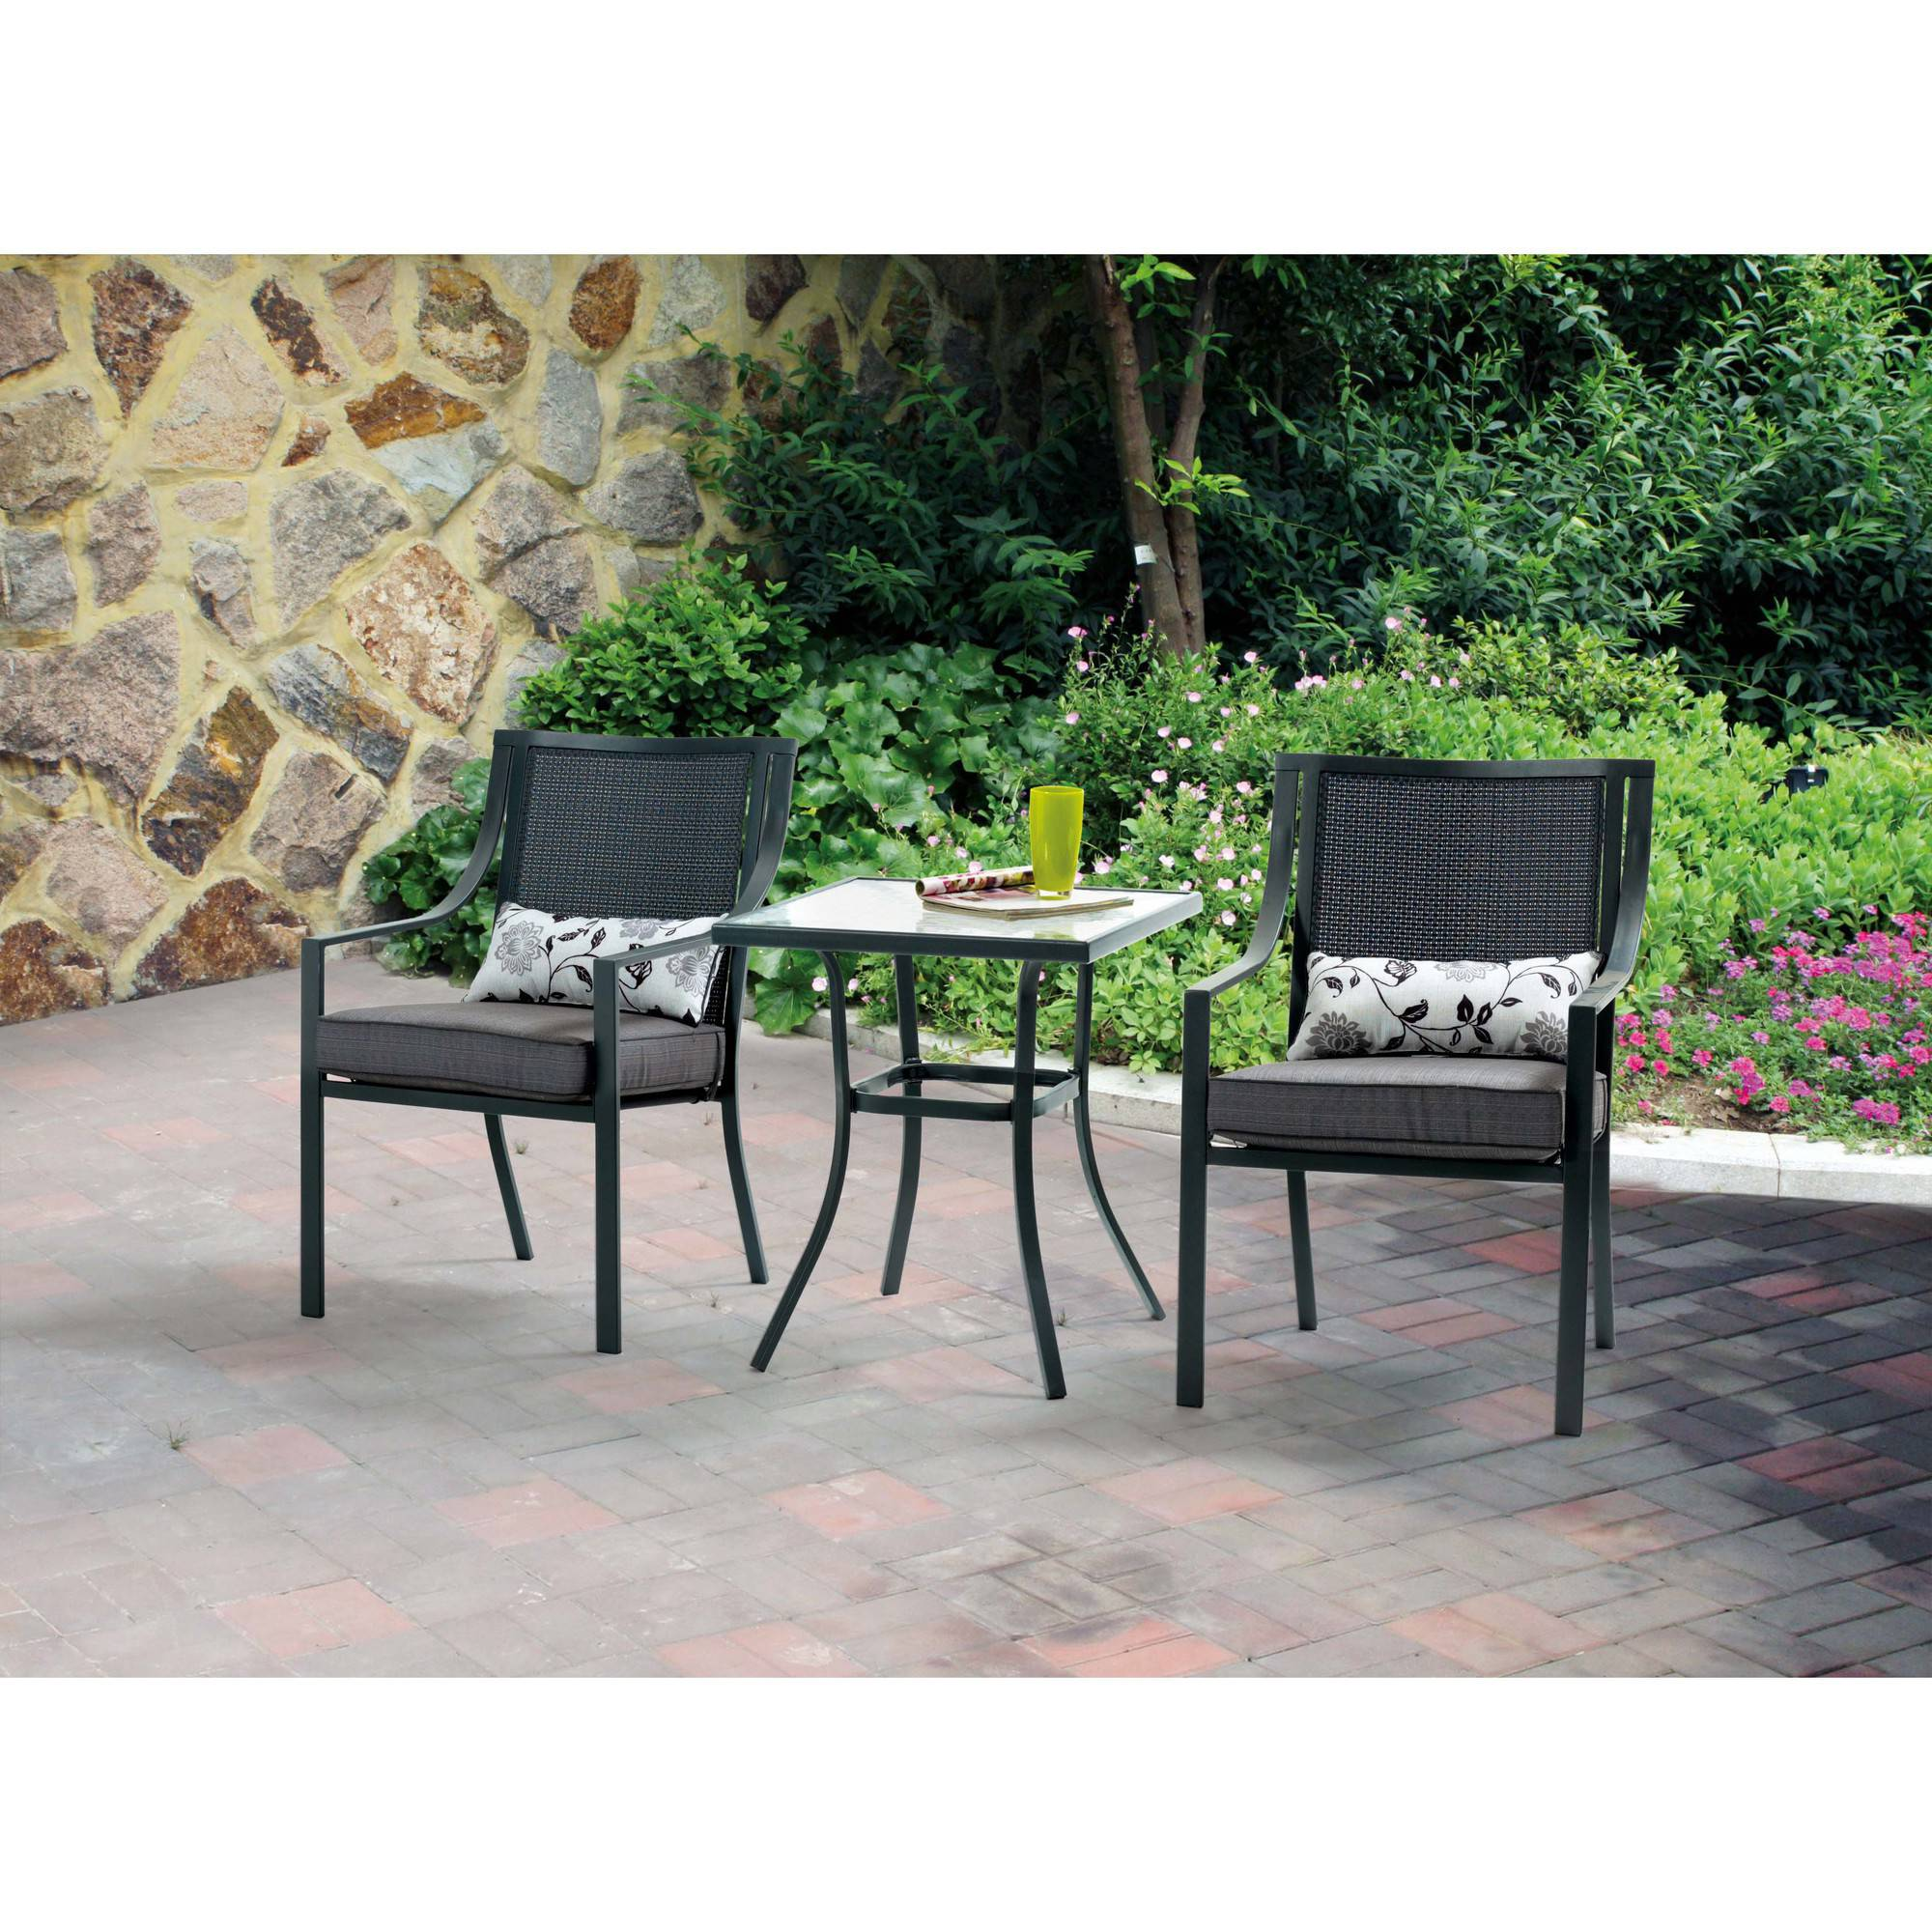 Improve Ambiance Of Your Place By Attractive Patio Bistro